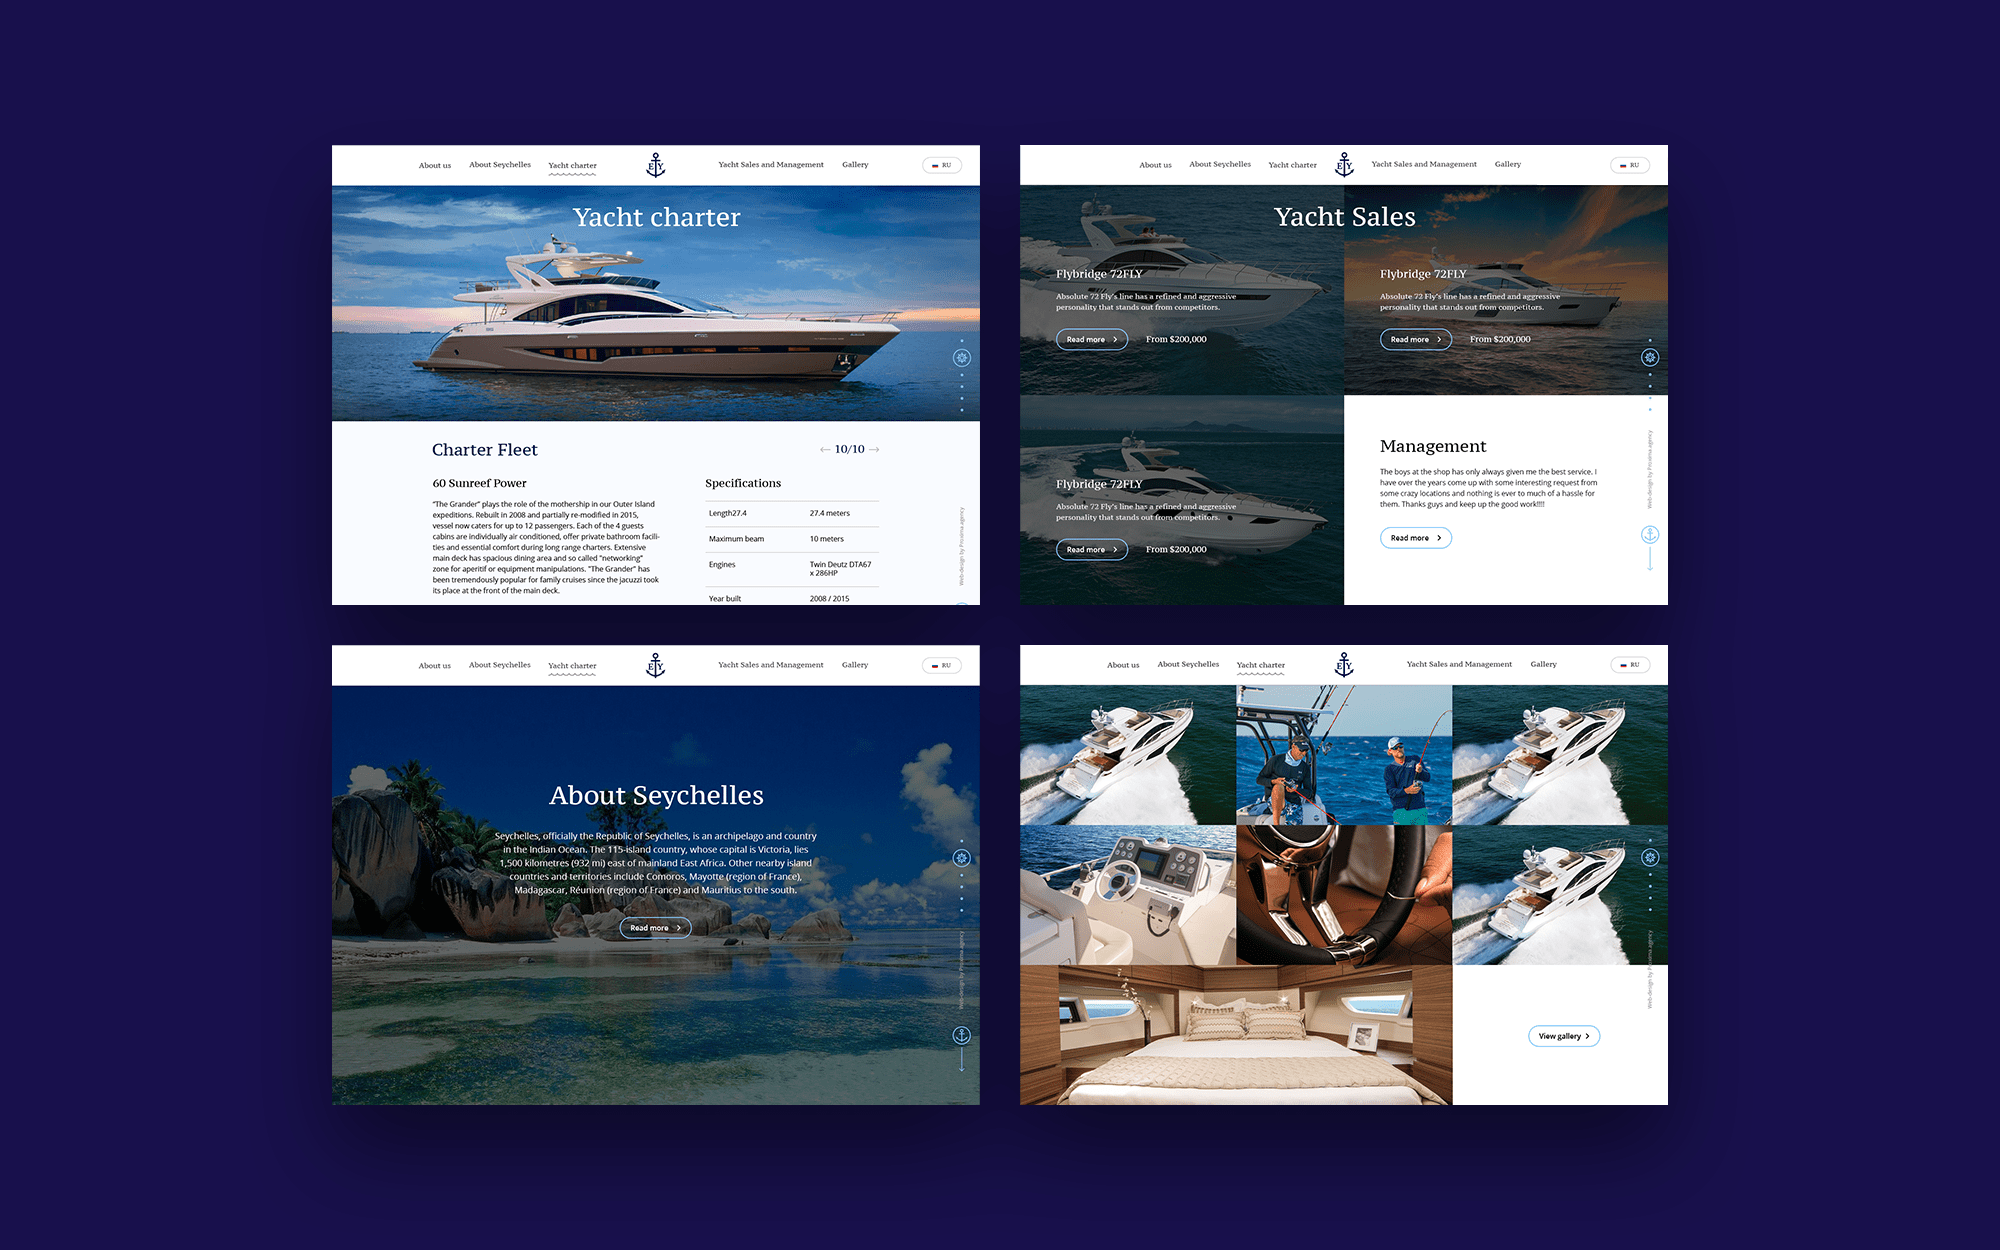 Yachting web-site design